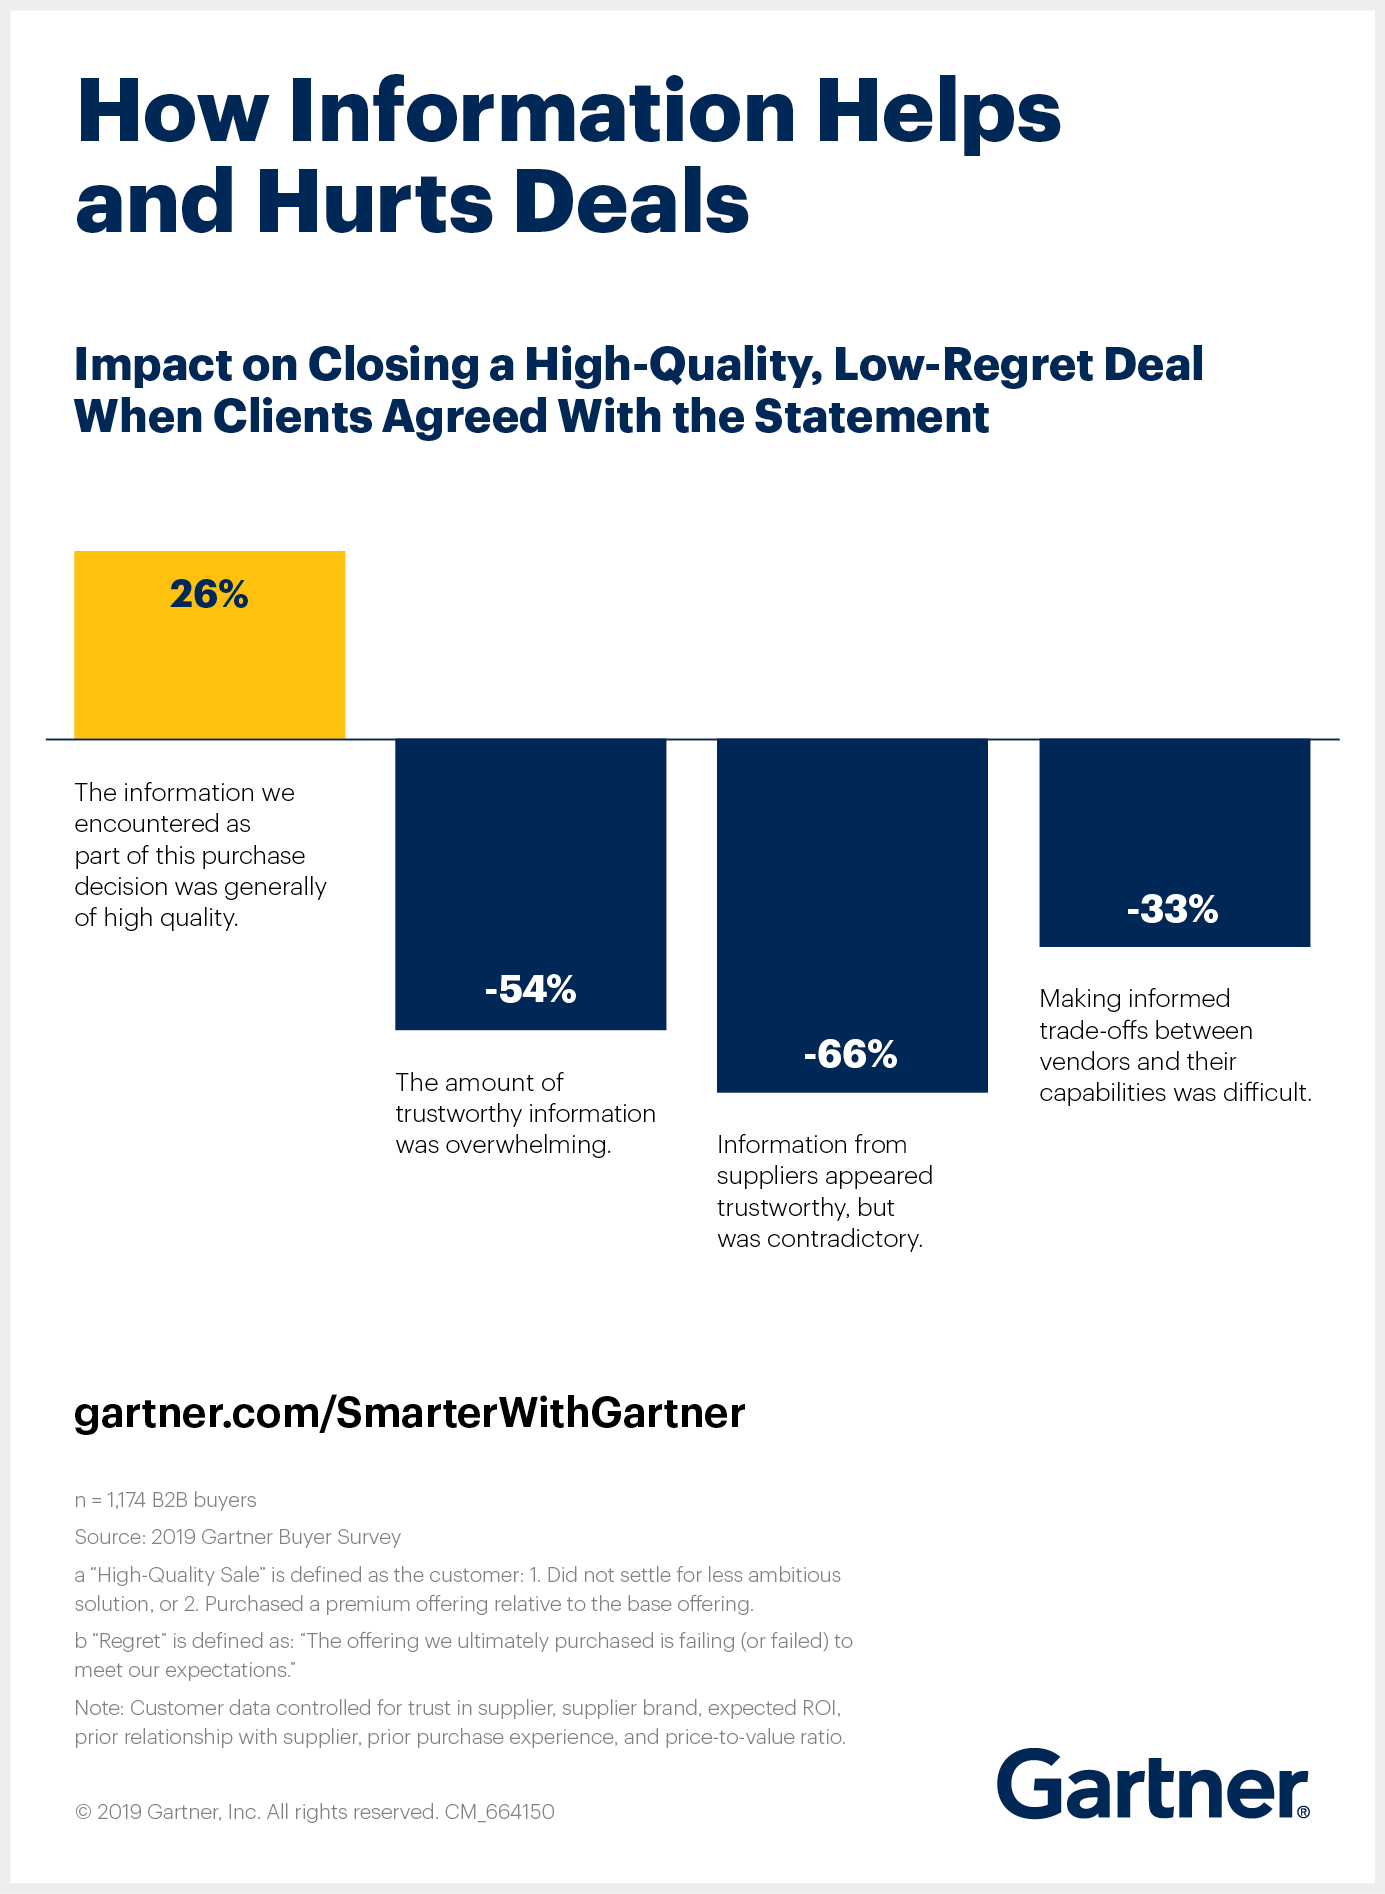 Gartner data illustrates that while high-quality information helps customers up to a point, three information conditions can actually reduce the likelihood of a customer completing a high-quality, low-regret purchase.